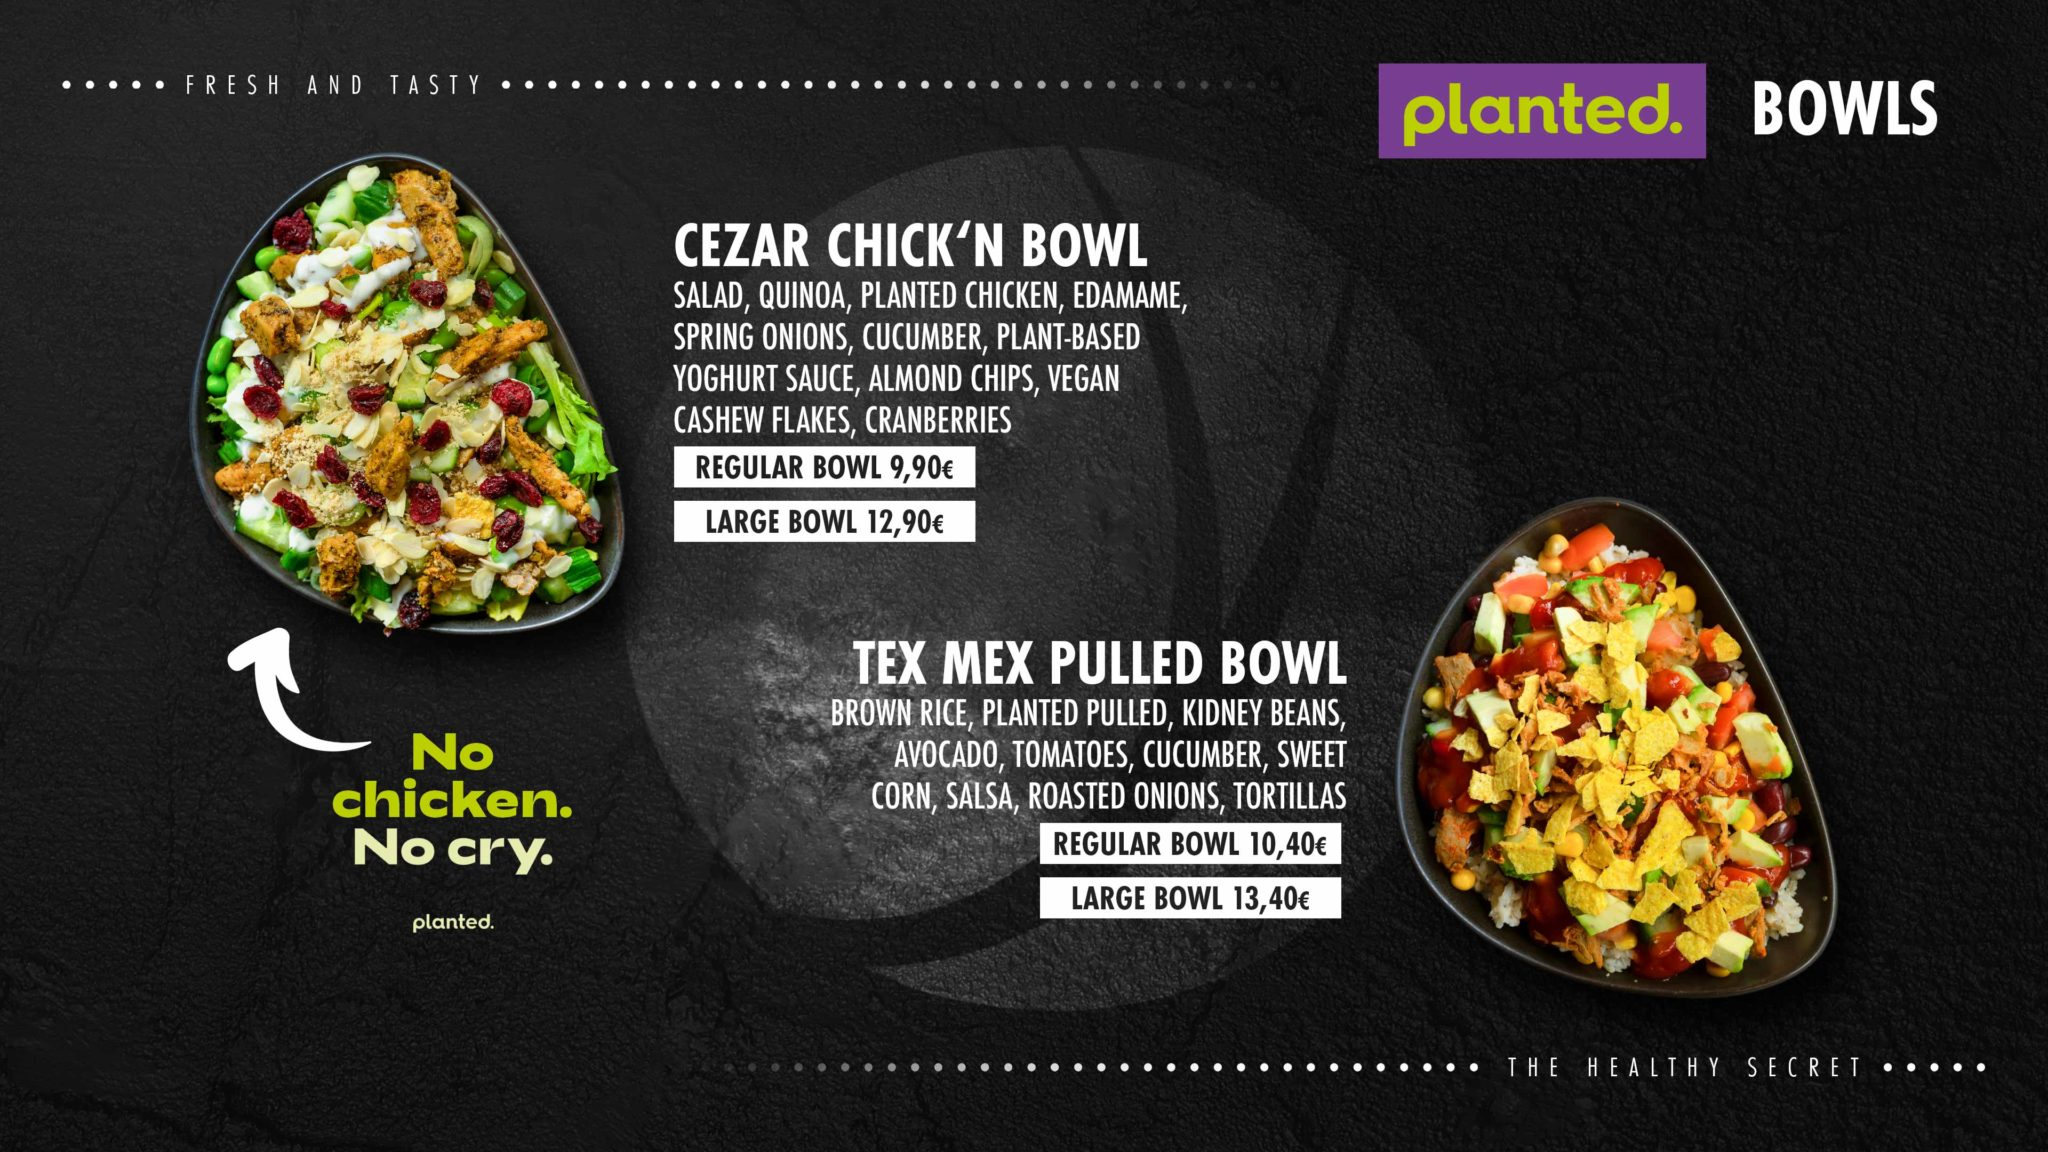 planted. bowls